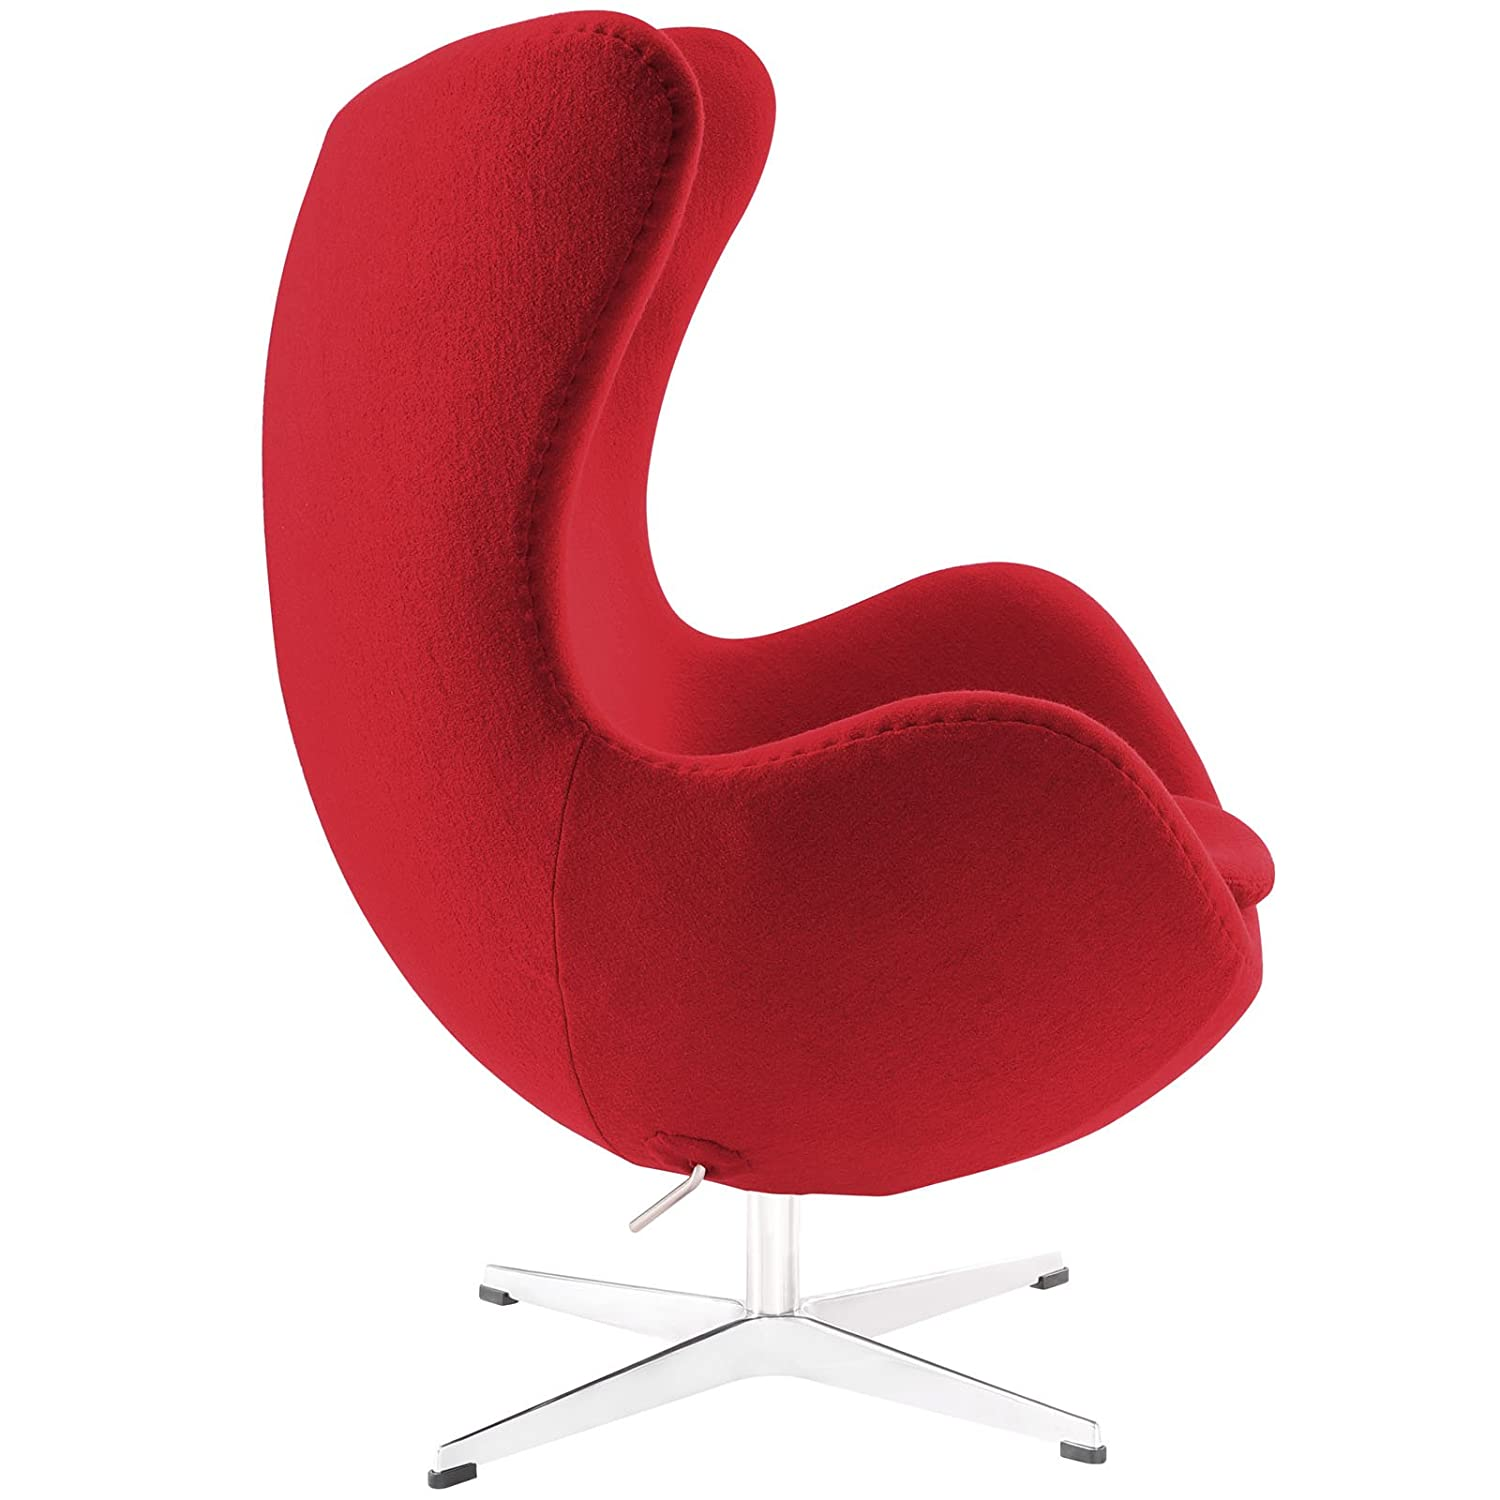 Amazon Modway Glove Wool Lounge Chair in Red Kitchen & Dining